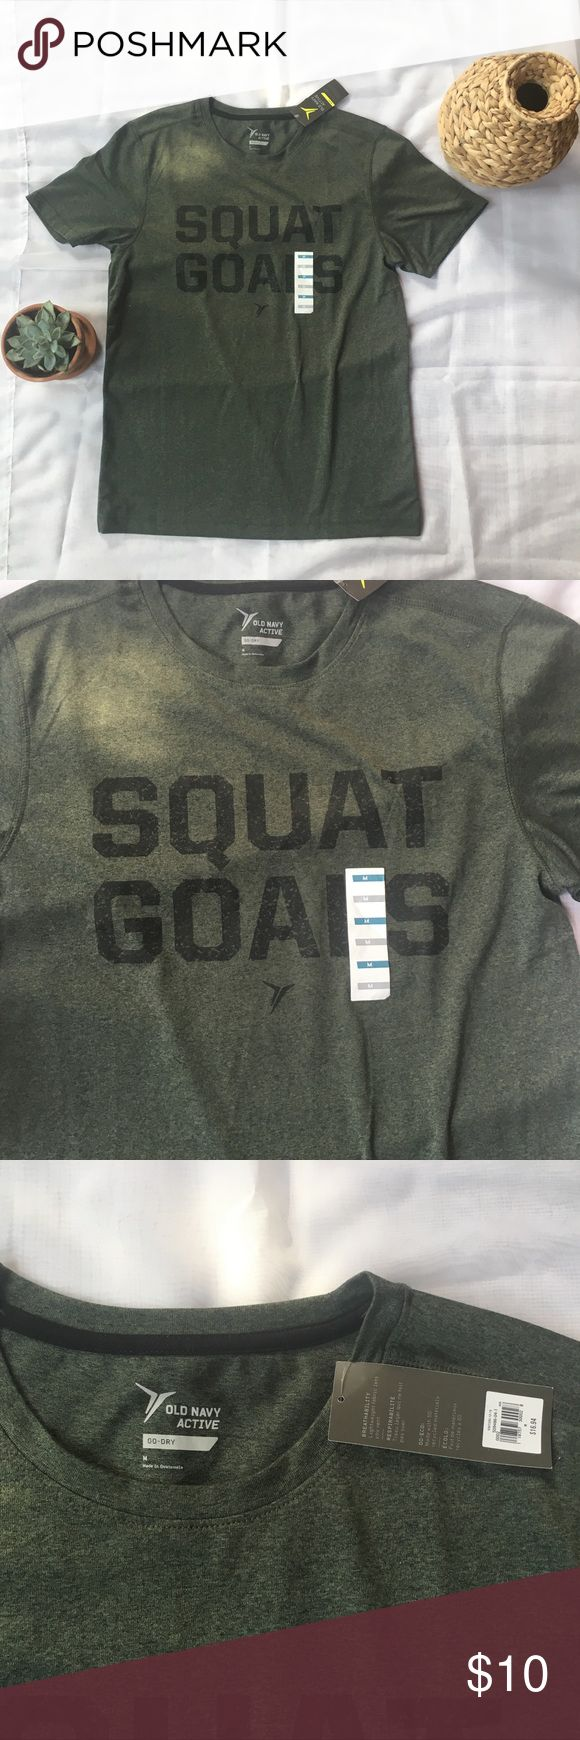 "NWT Mens Old Navy Active T Brand new. Old Navy Active men's workout graphic T. Says ""Squat Goals"". Olive green with black lettering. Size M but fits more like a small in my husbands opinion. Old Navy Shirts Tees - Short Sleeve"